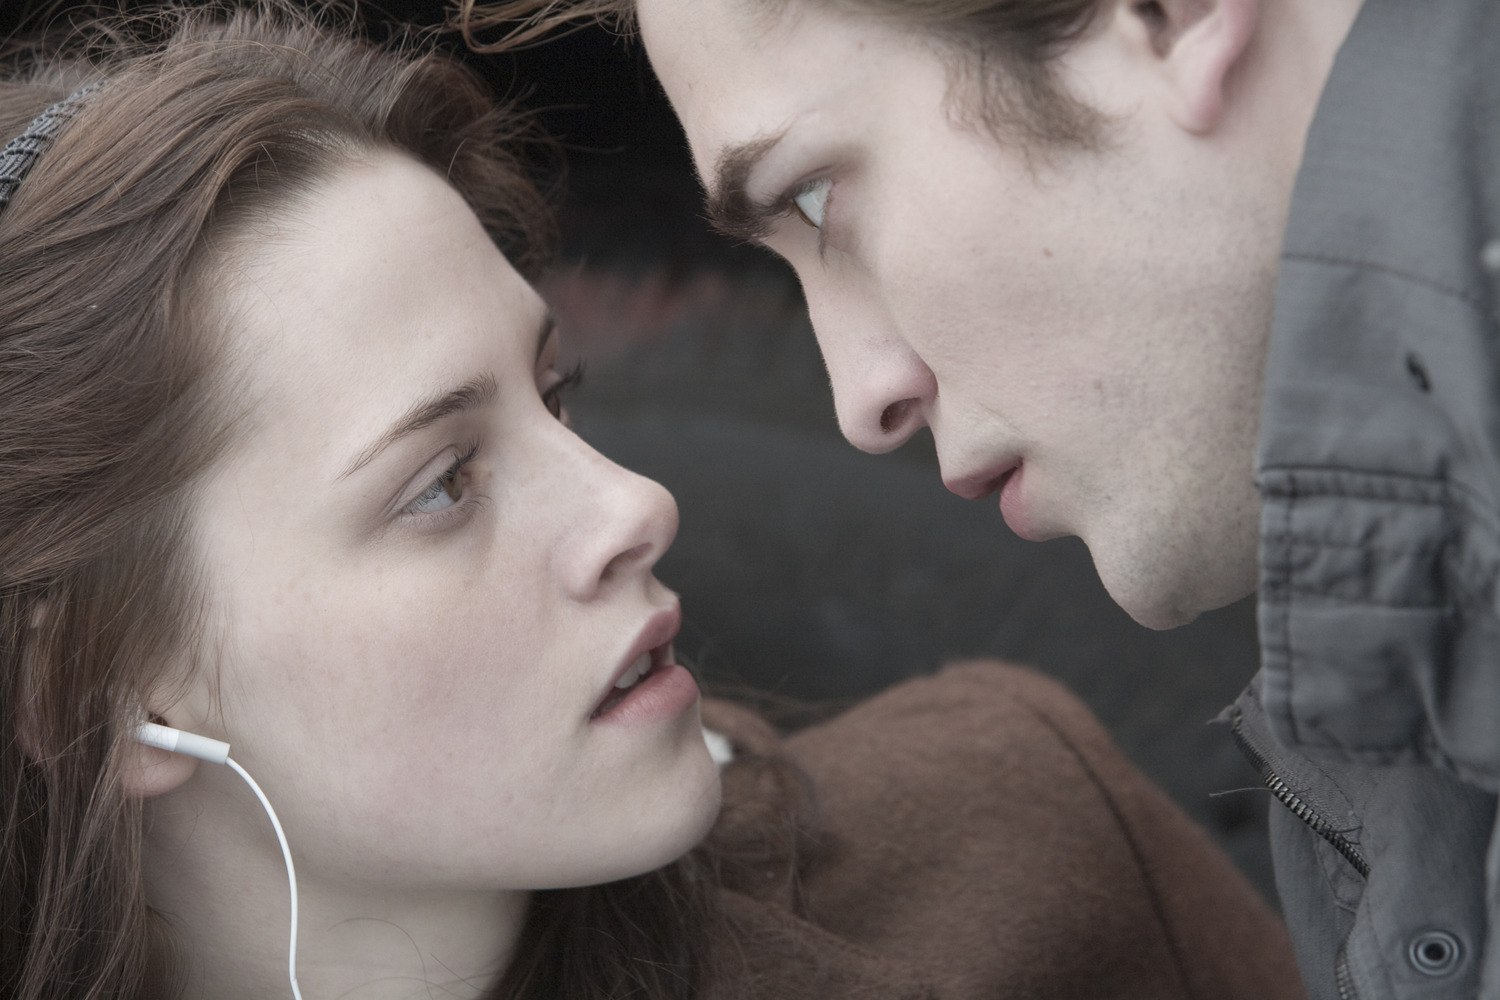 Twilight chapitre 1 fascination (2008)